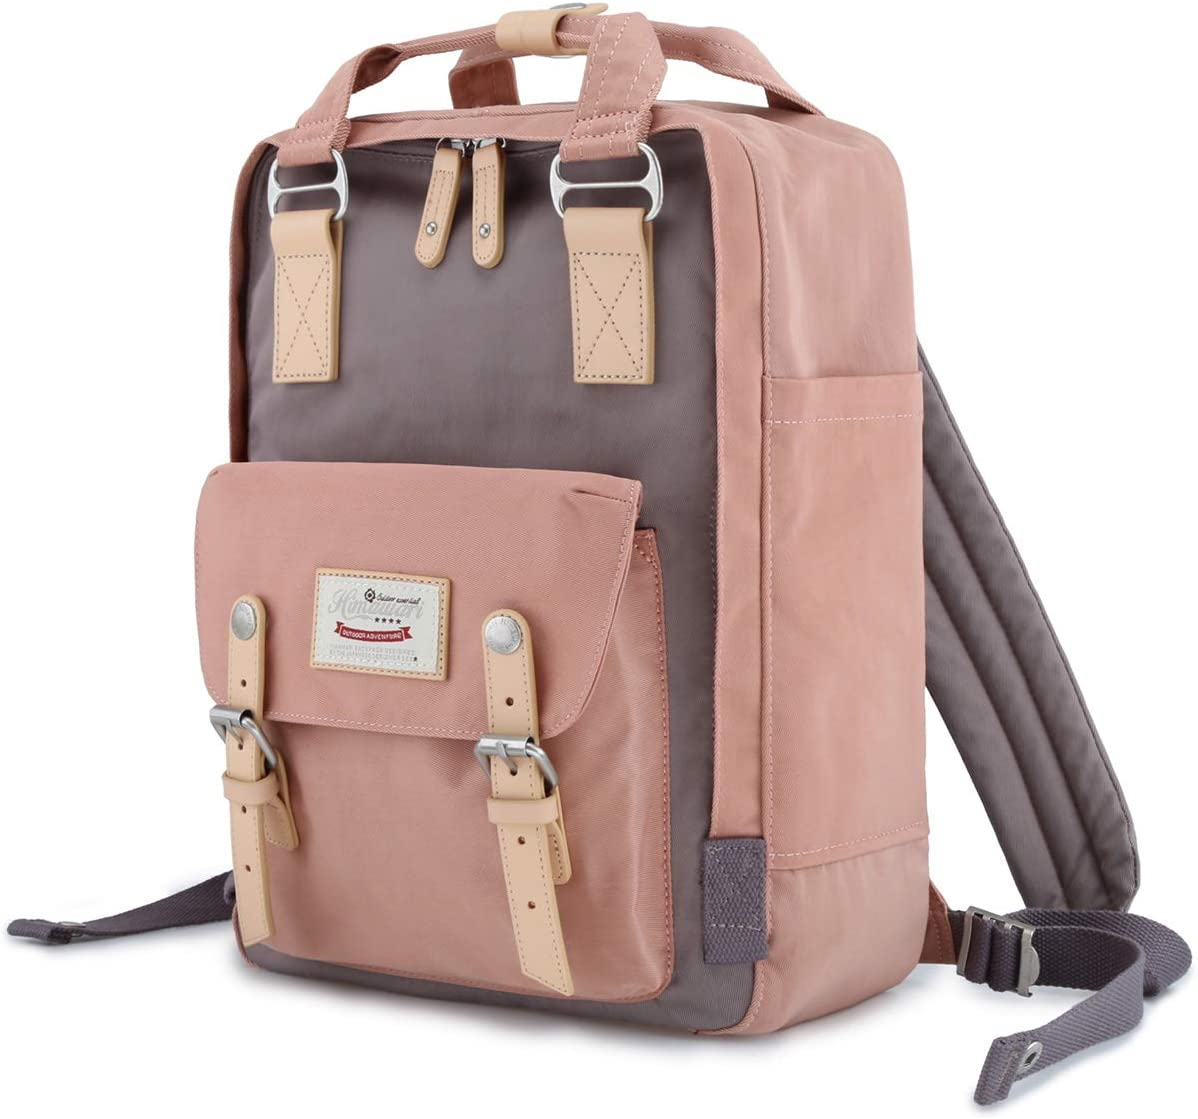 Himawari Cute School Bag with Laptop Compartment Waterproof Travel Backpack for Girls Women,15 Inch